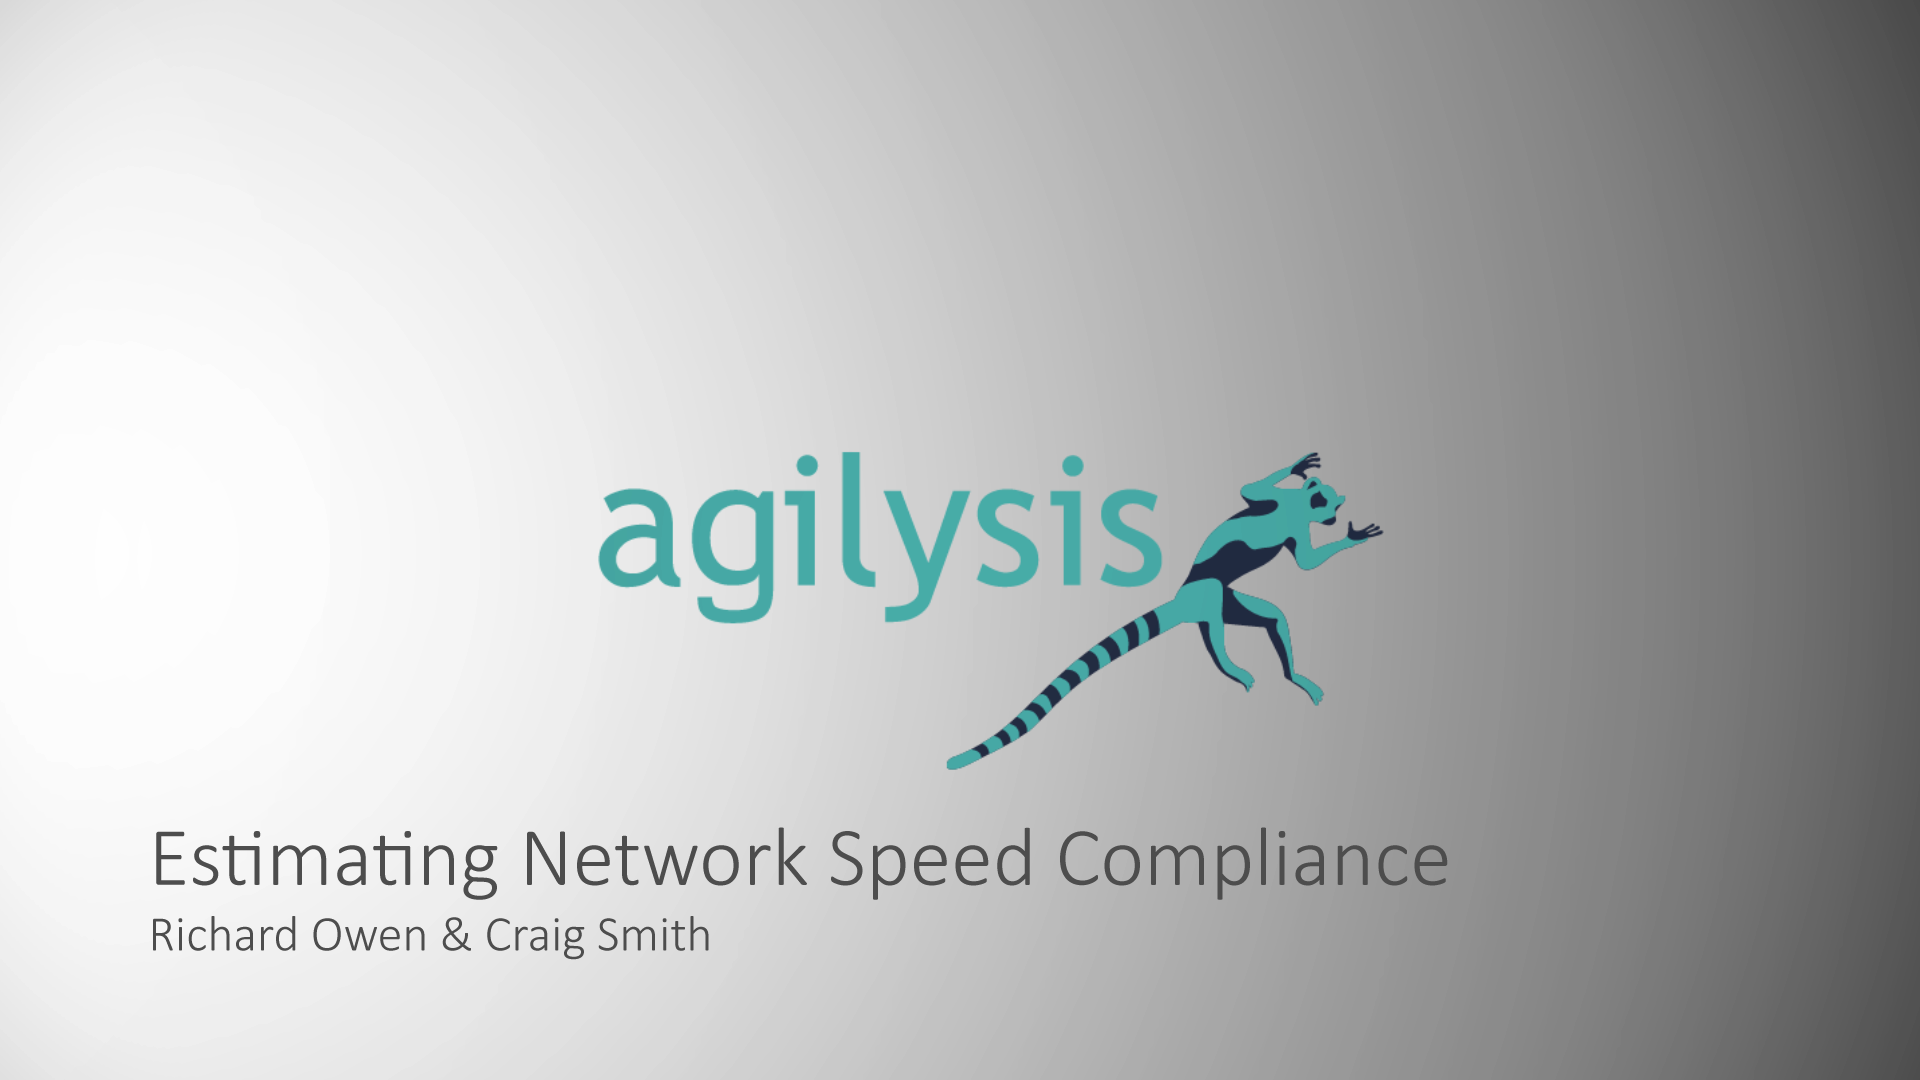 Estimating Network Speed Compliance